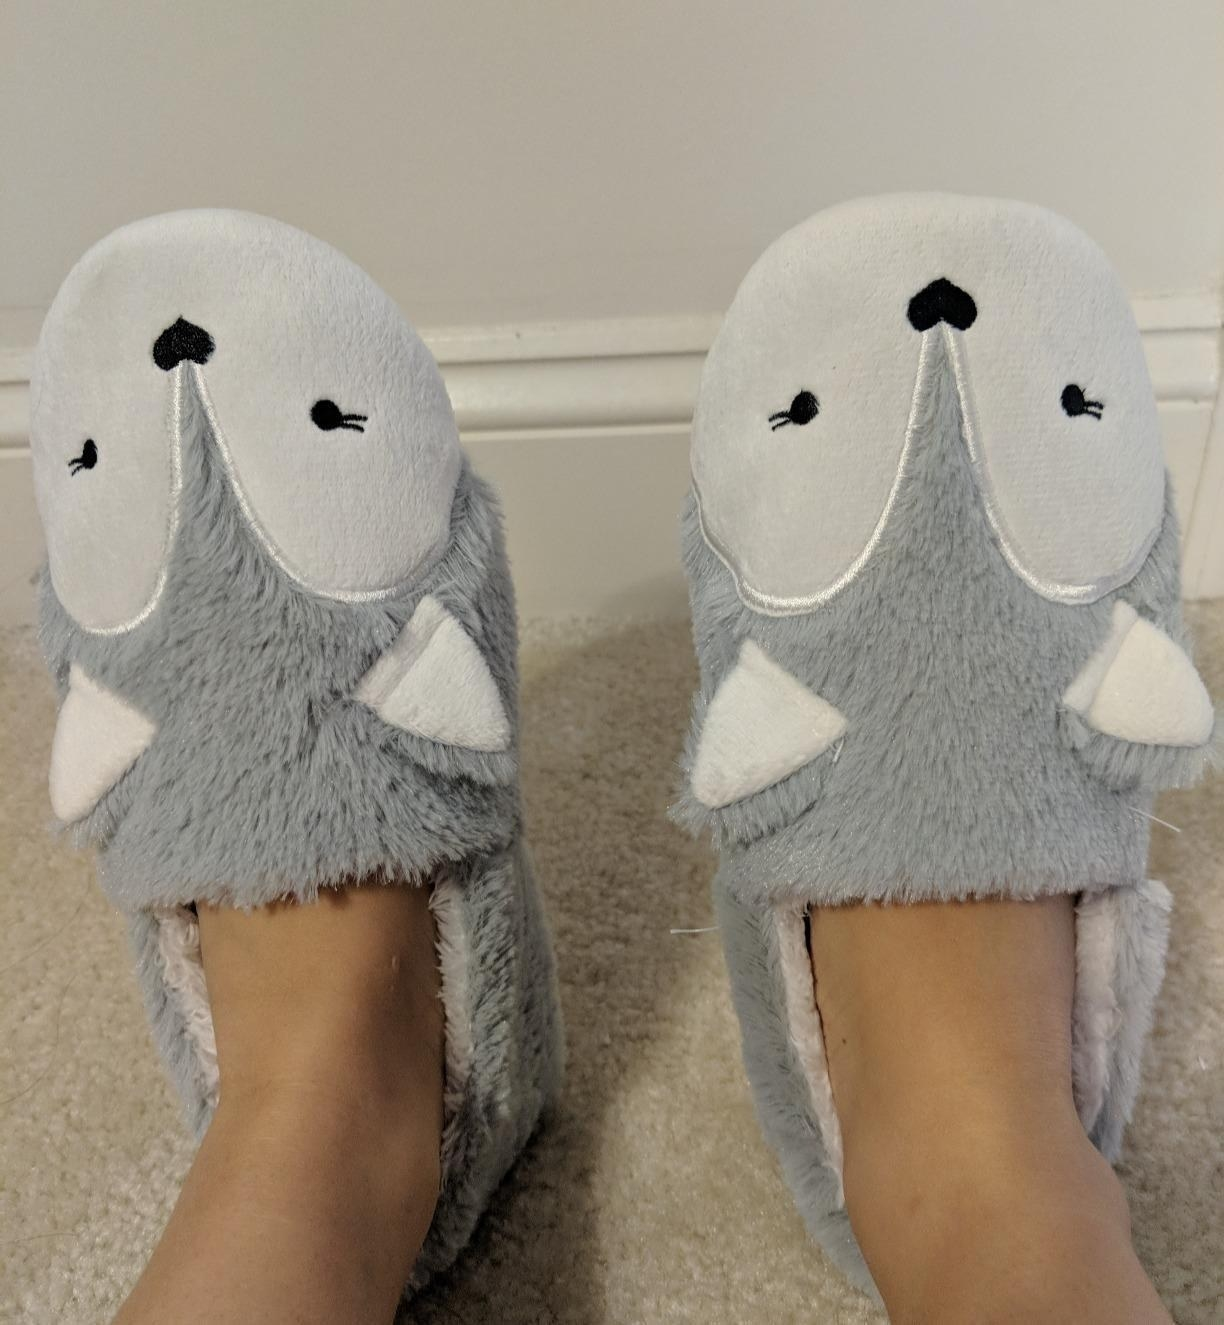 A close-up of the slippers worn by a buyer